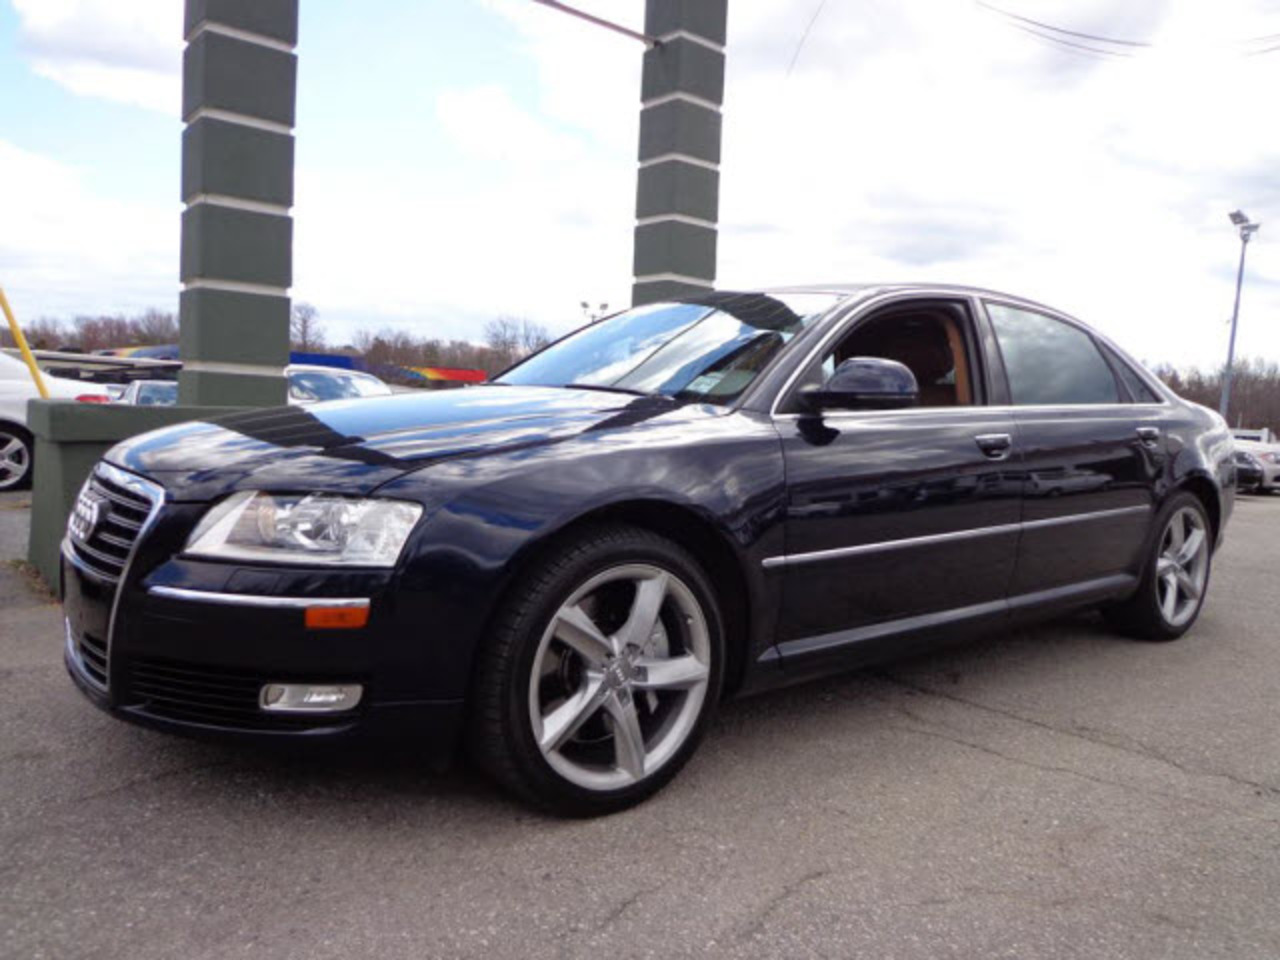 Audi A8 For Sale | Cars and Vehicles | Philadelphia | recycler.